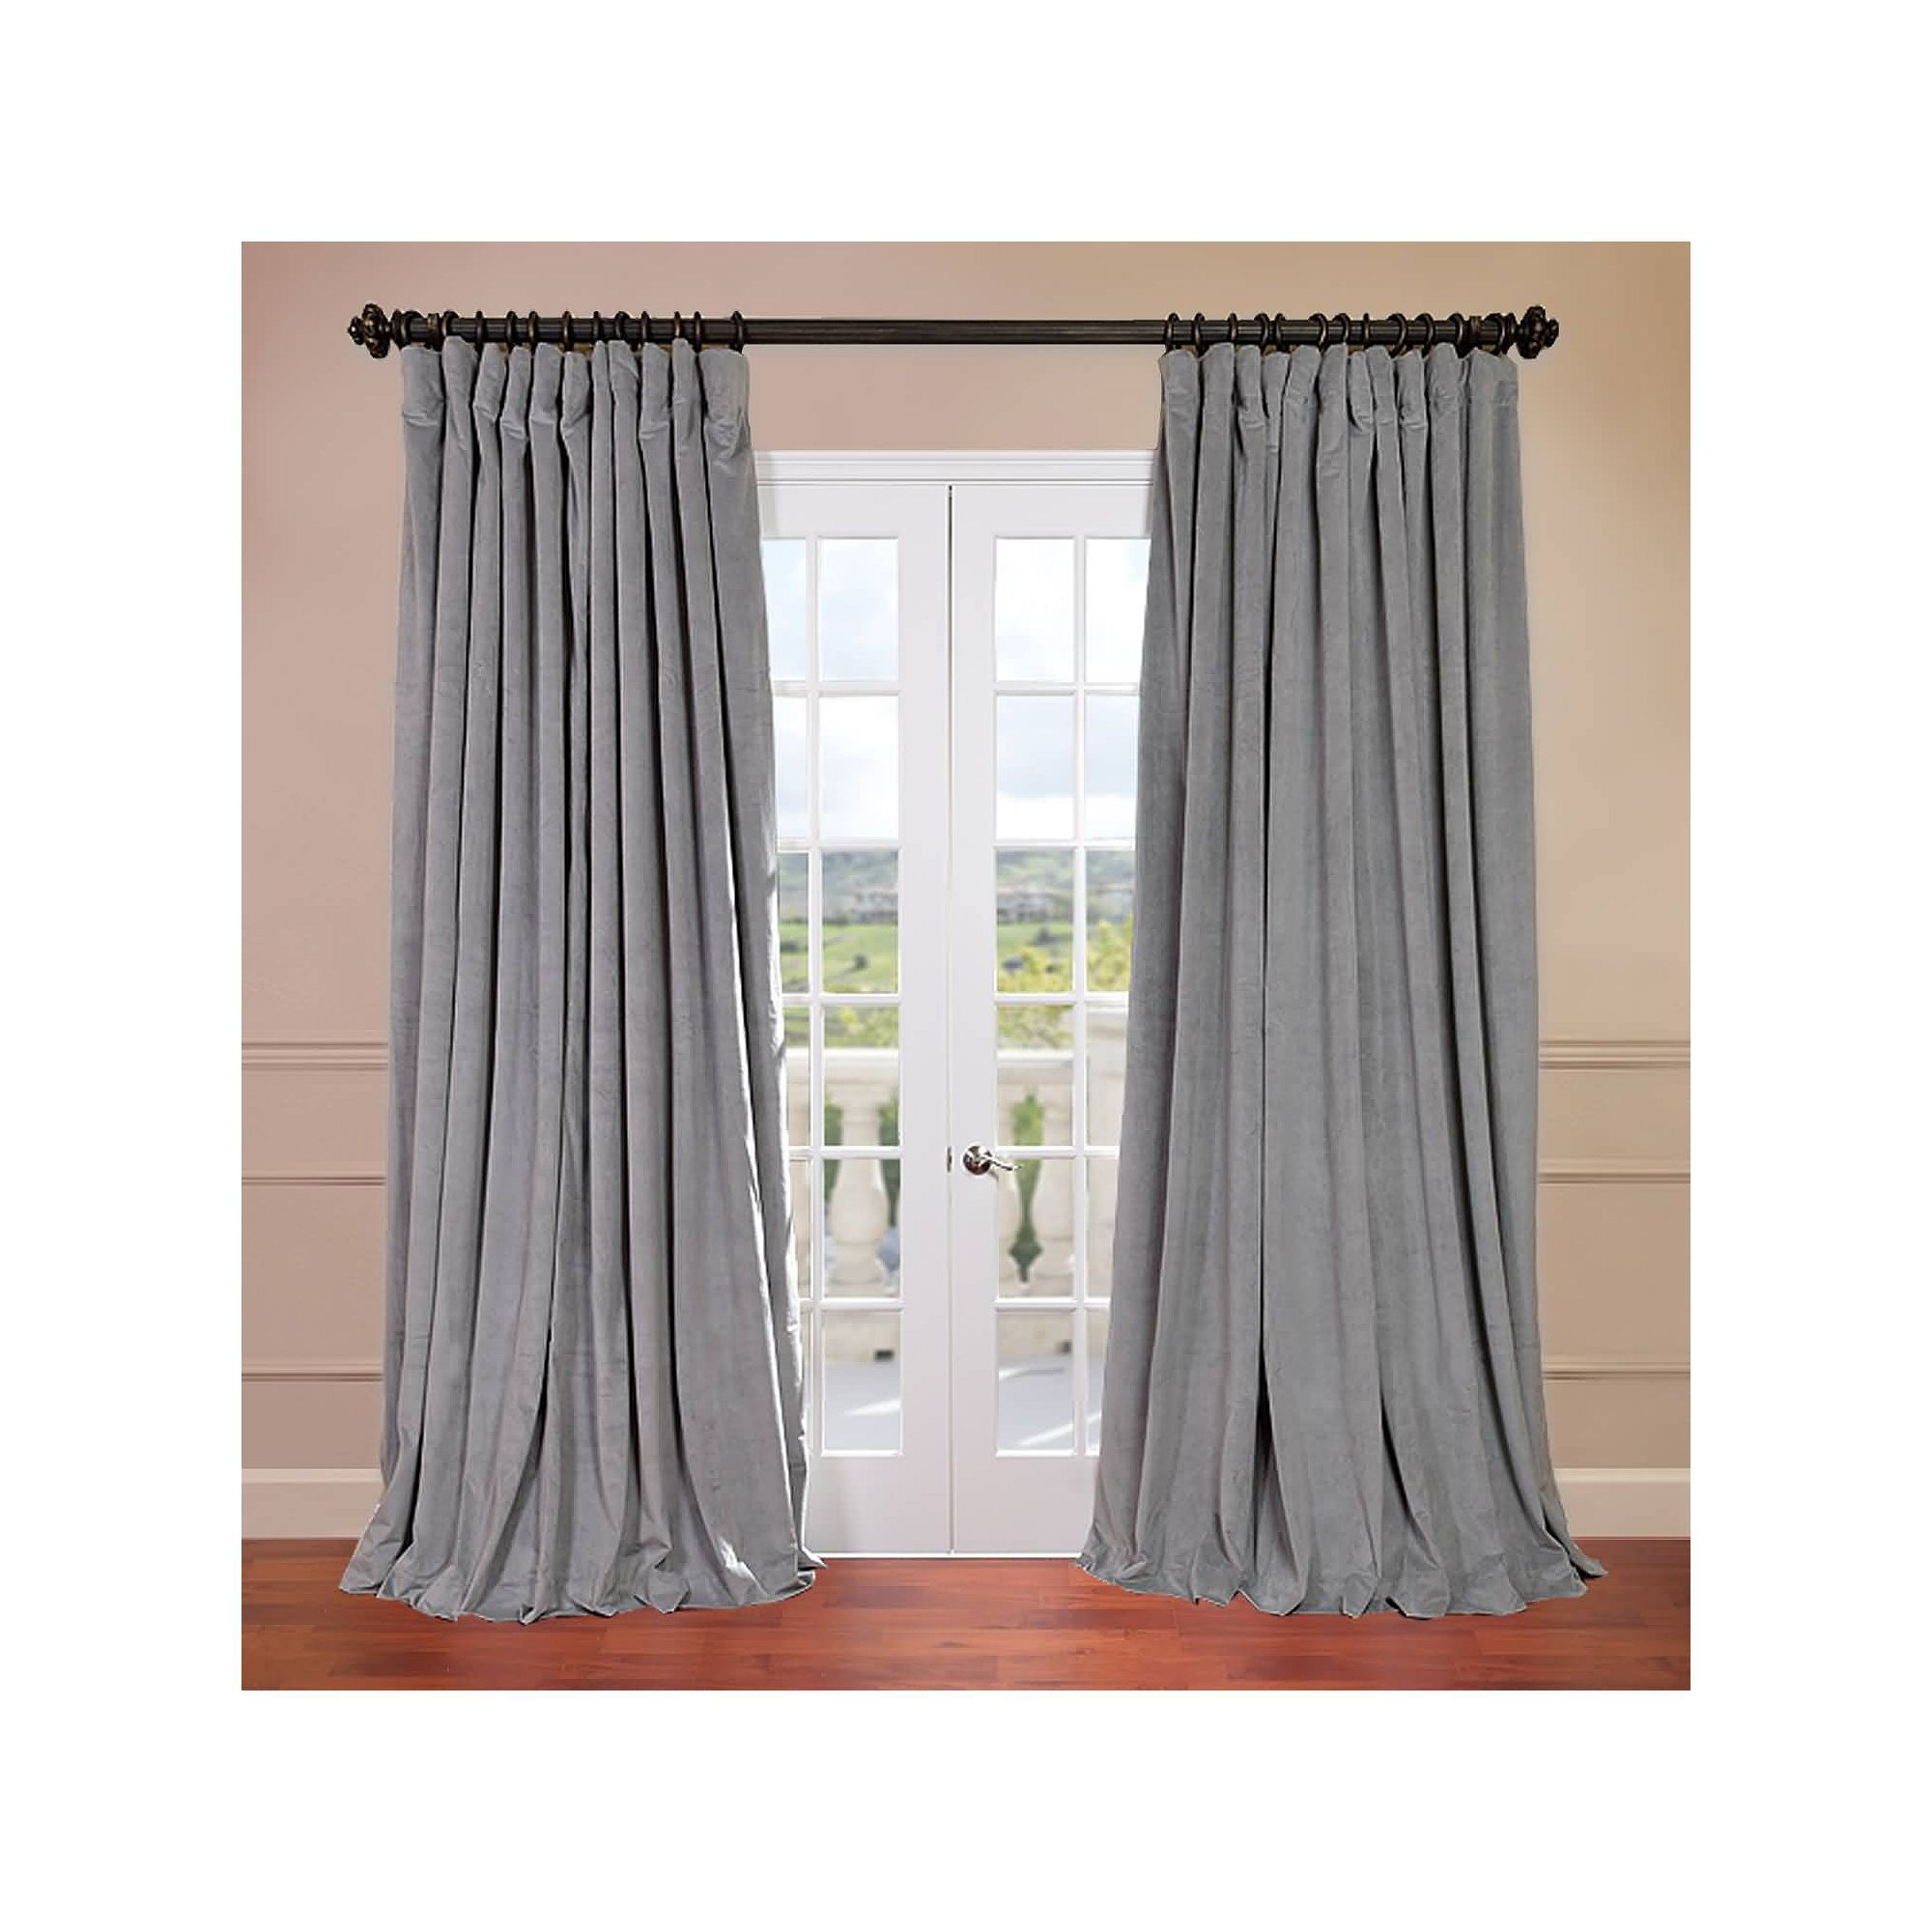 curtain door patio panel single extra grommet melanie wide pin curtains